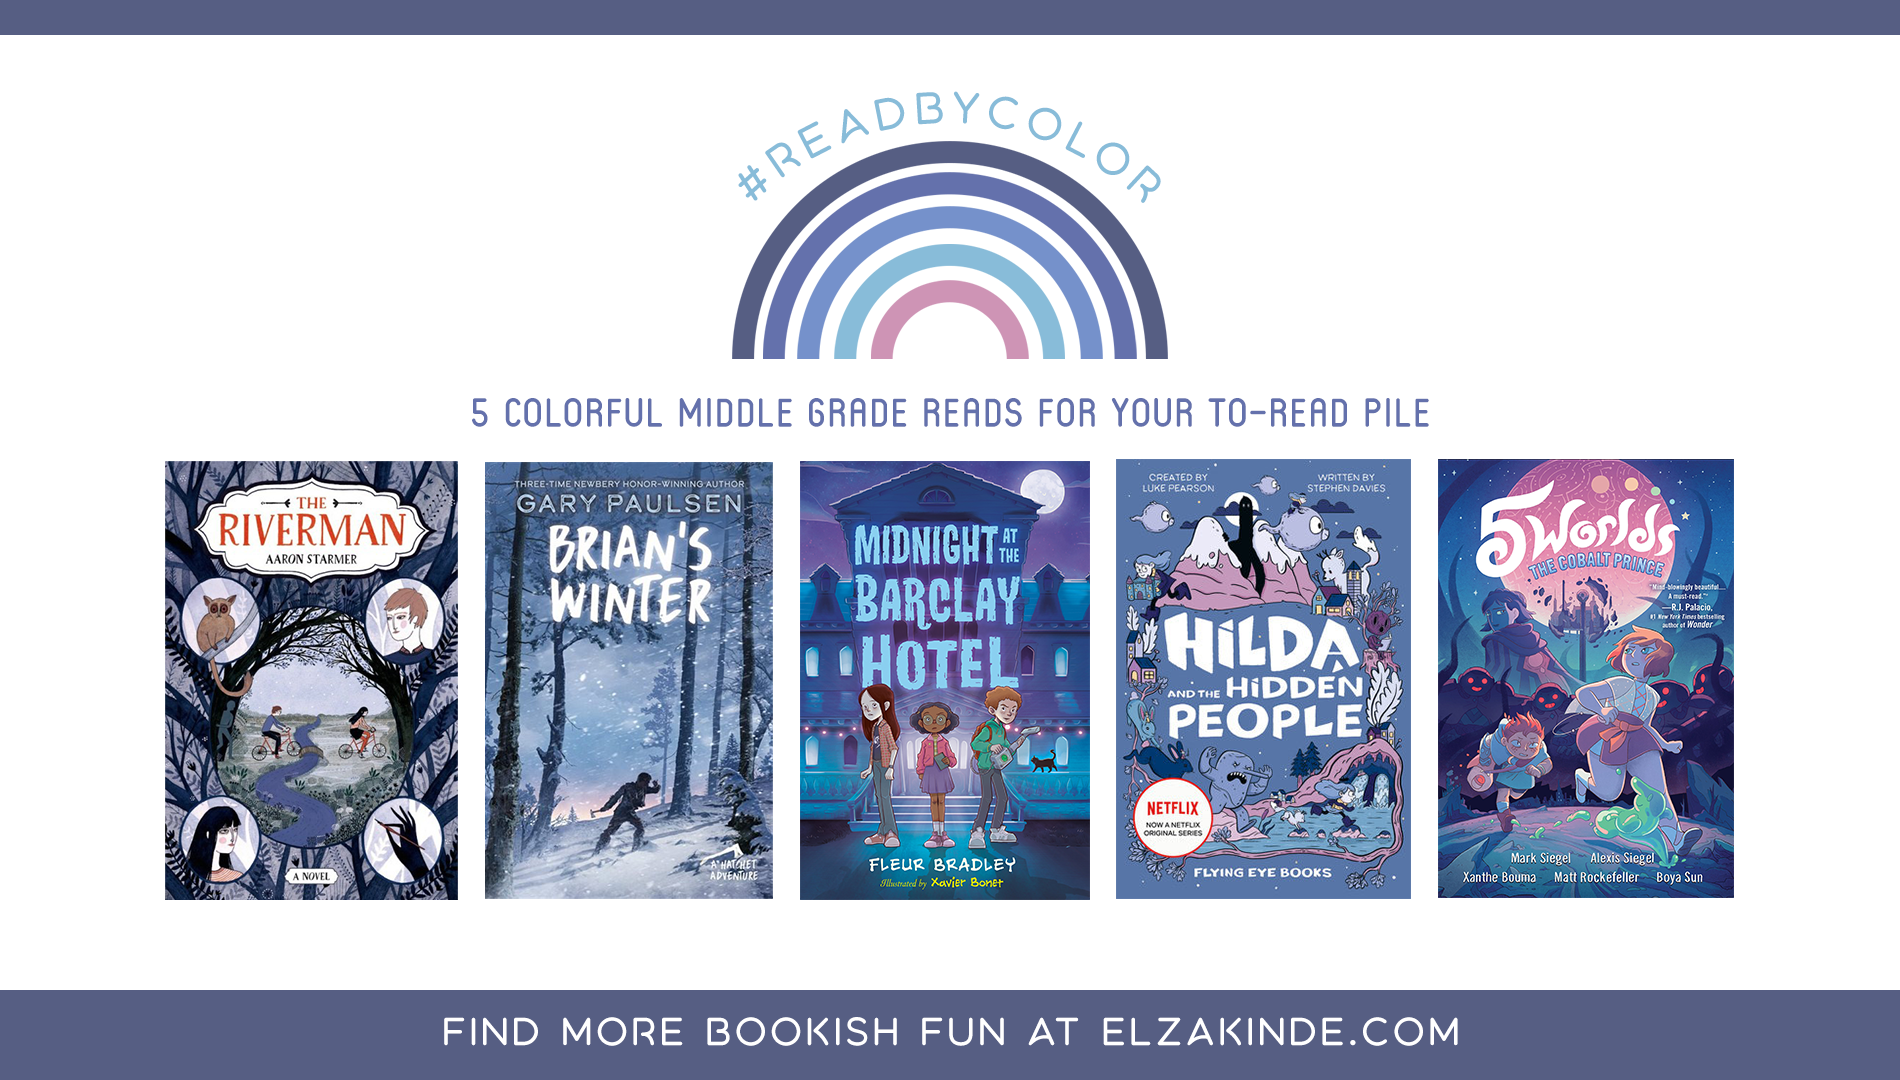 #ReadByColor: 5 Colorful Middle Grade Reads for Your To-Read Pile | features the book covers of THE RIVERMAN by Aaron Starmer; BRIAN'S WINTER by Gary Paulsen; MIDNIGHT AT THE BARCLAY HOTEL by Fleur Bradley; HILDA AND THE HIDDEN PEOPLE by Luke Pearson & Stephen Davies; and THE COBALT PRINCE by Mark Siegel, Alexis Siegel, Xanthe Bouma, Matt Rockefeller, and Boya Sun.